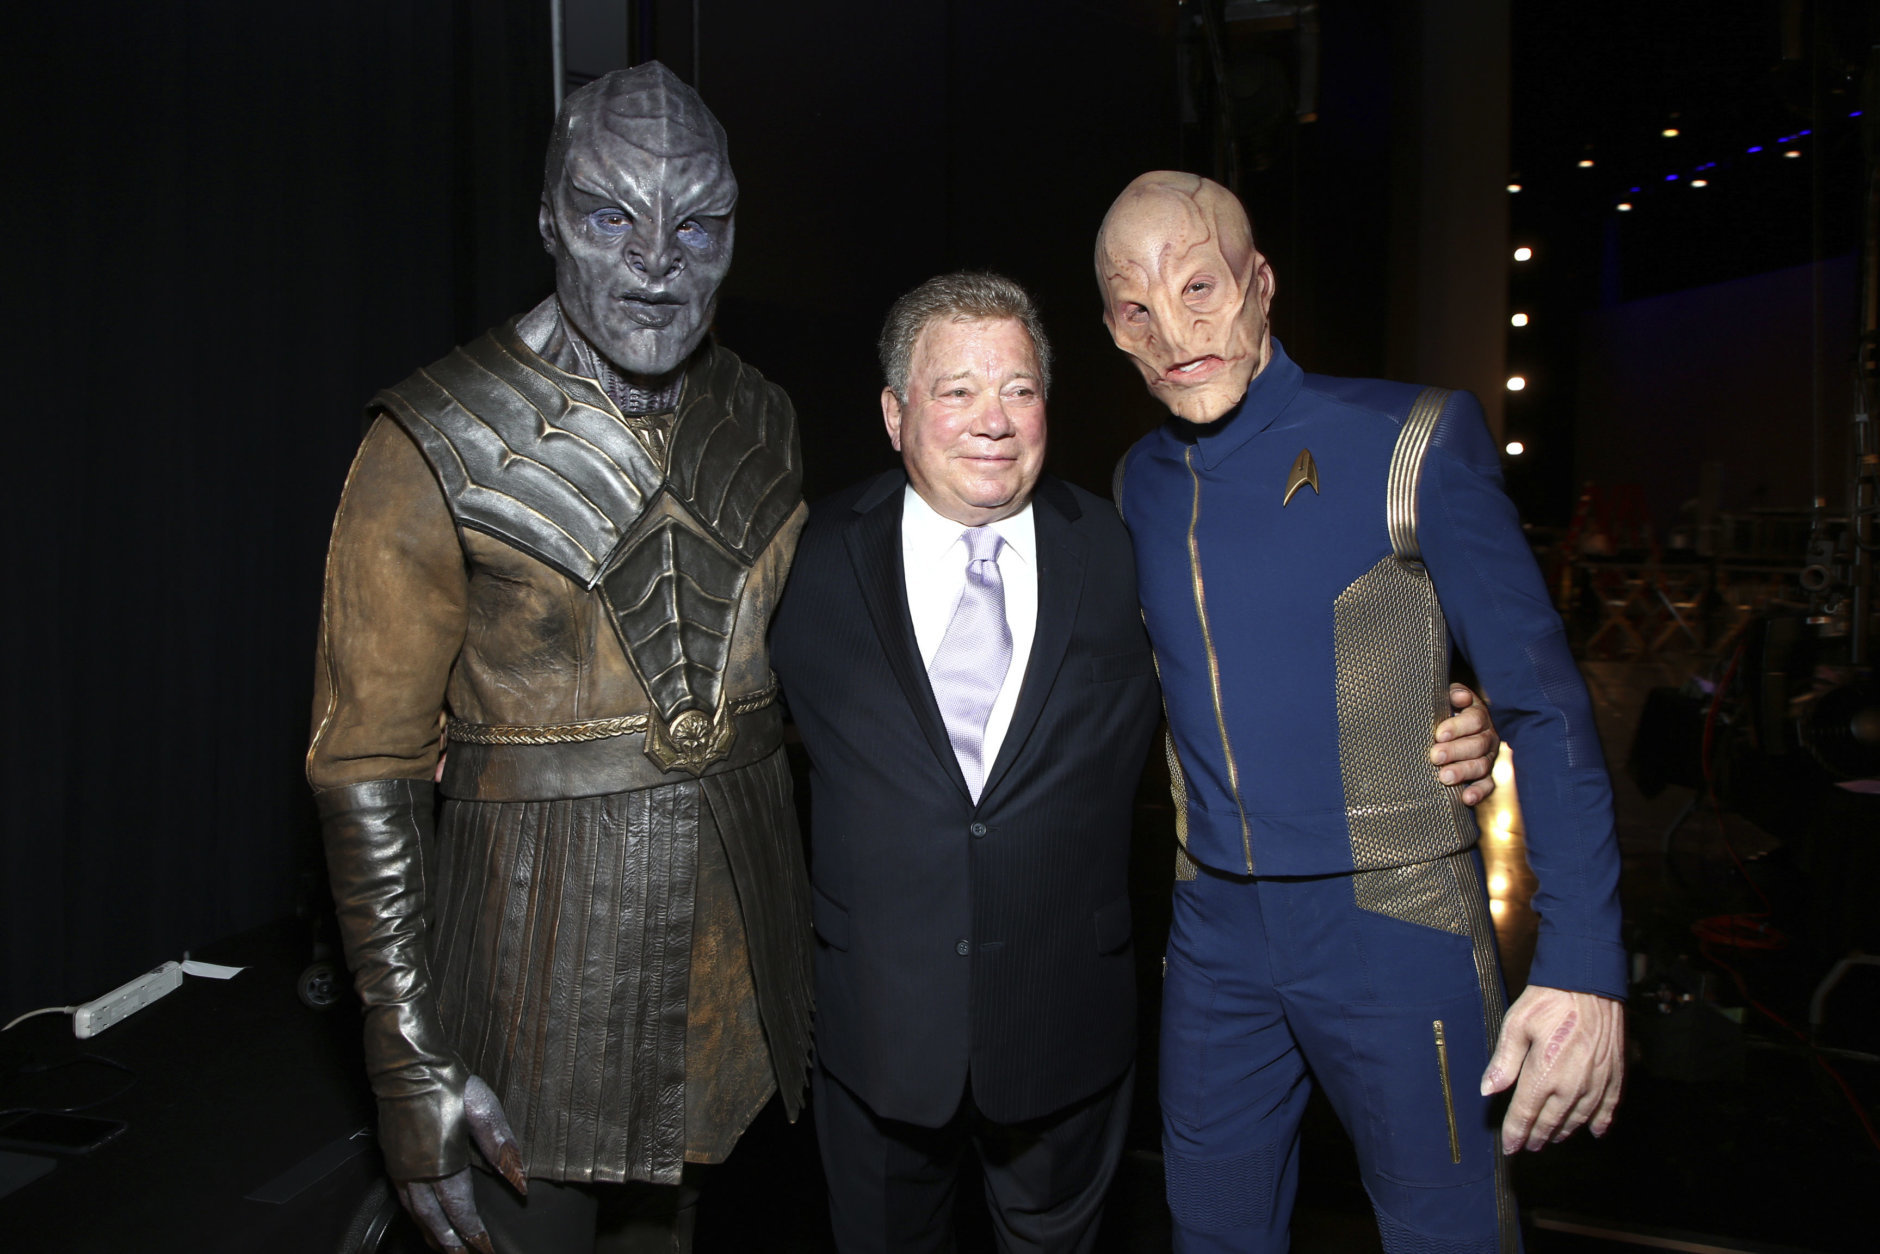 EXCLUSIVE - William Shatner, center poses backstage with a Klingon, left, and a Kelpien at night one of the Television Academy's 2018 Creative Arts Emmy Awards at the Microsoft Theater on Saturday, Sept. 8, 2018, in Los Angeles. (Photo by John Salangsang/Invision/AP)